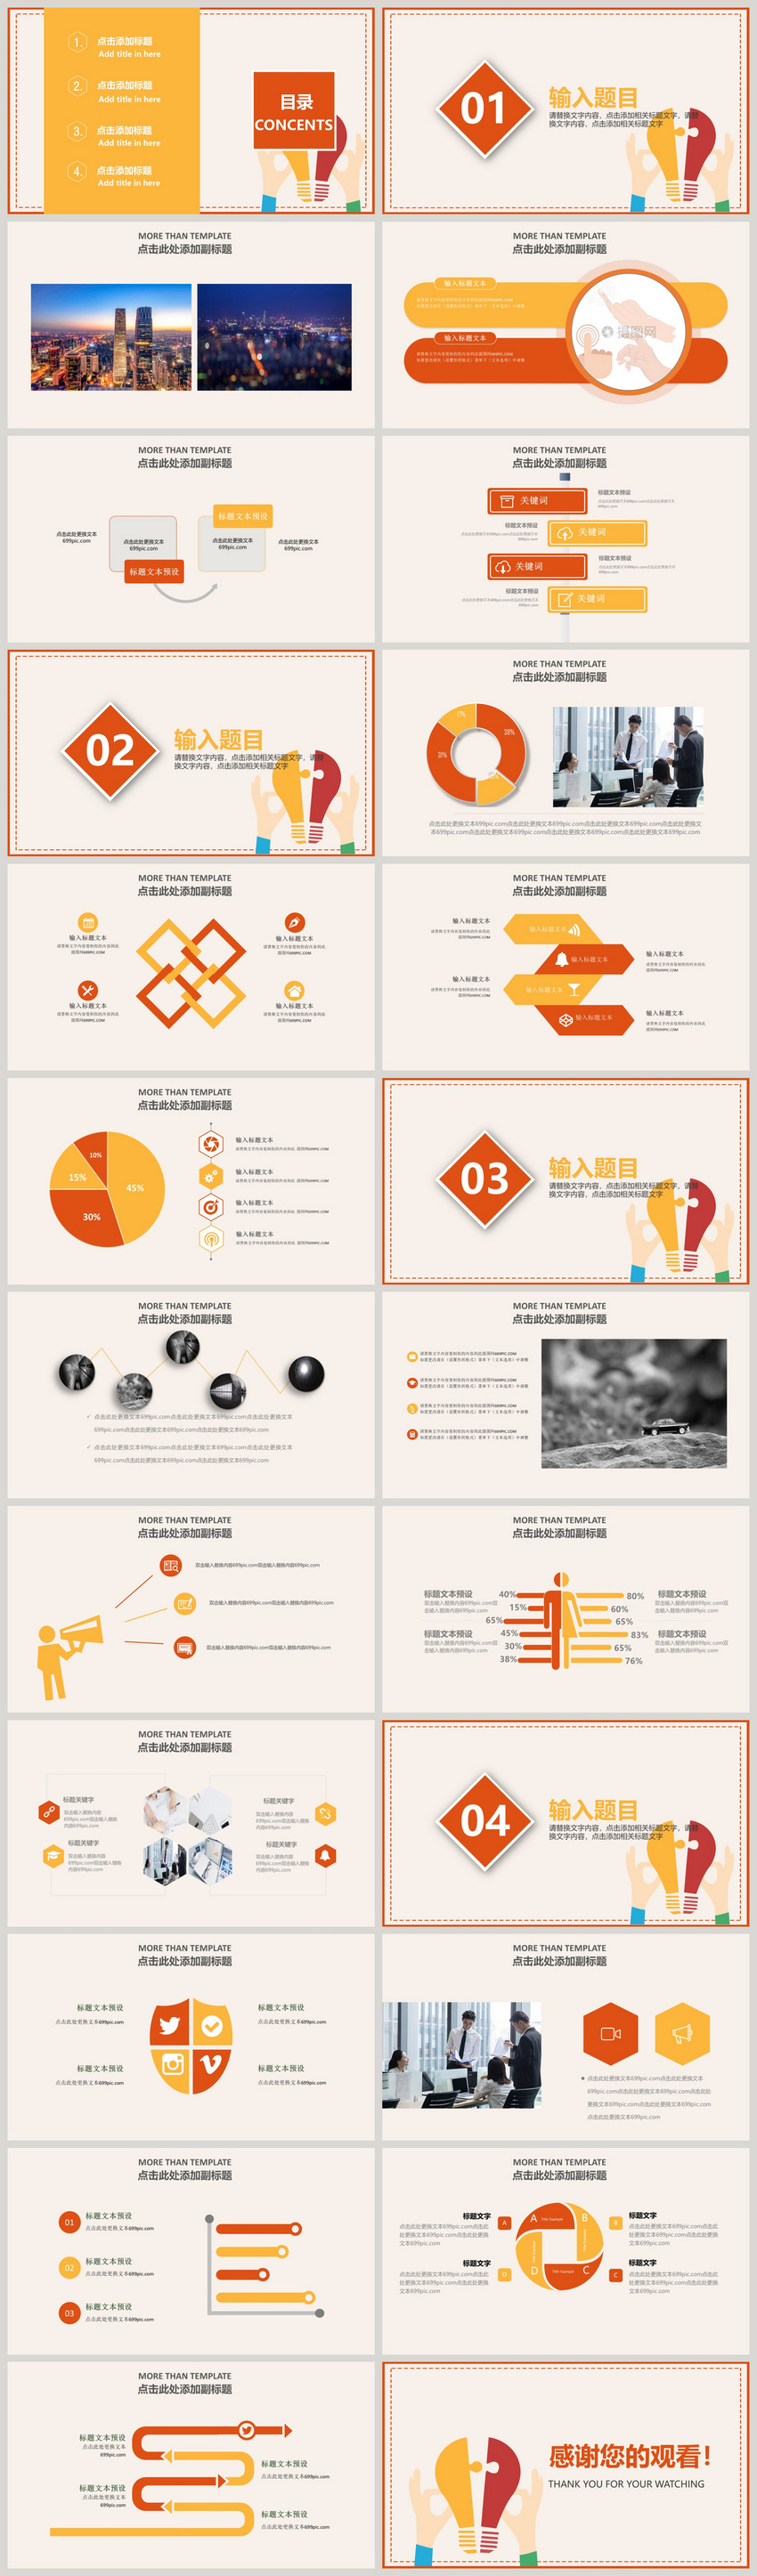 Innovation Of Future Business Ppt Template Powerpoint Templete Ppt Free Download 400950573 Lovepik Com